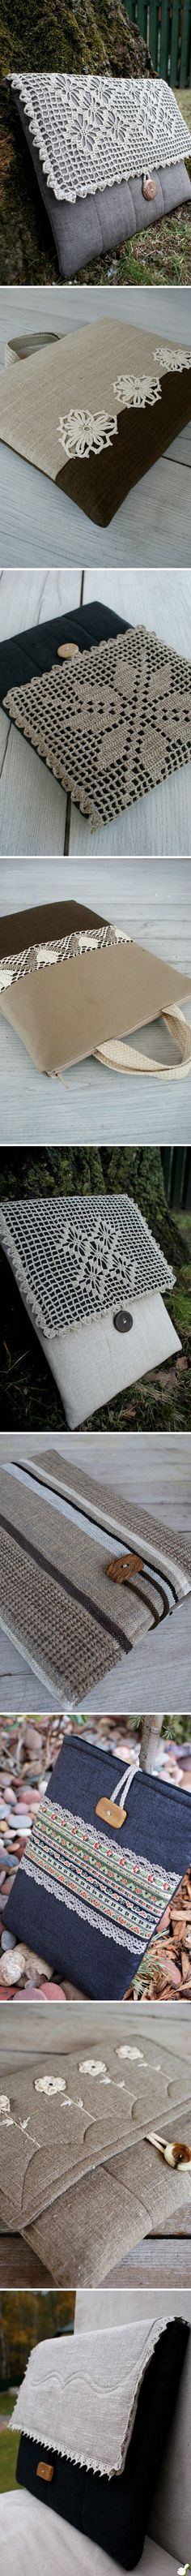 iPad case :: Stylishly decorated with crochet